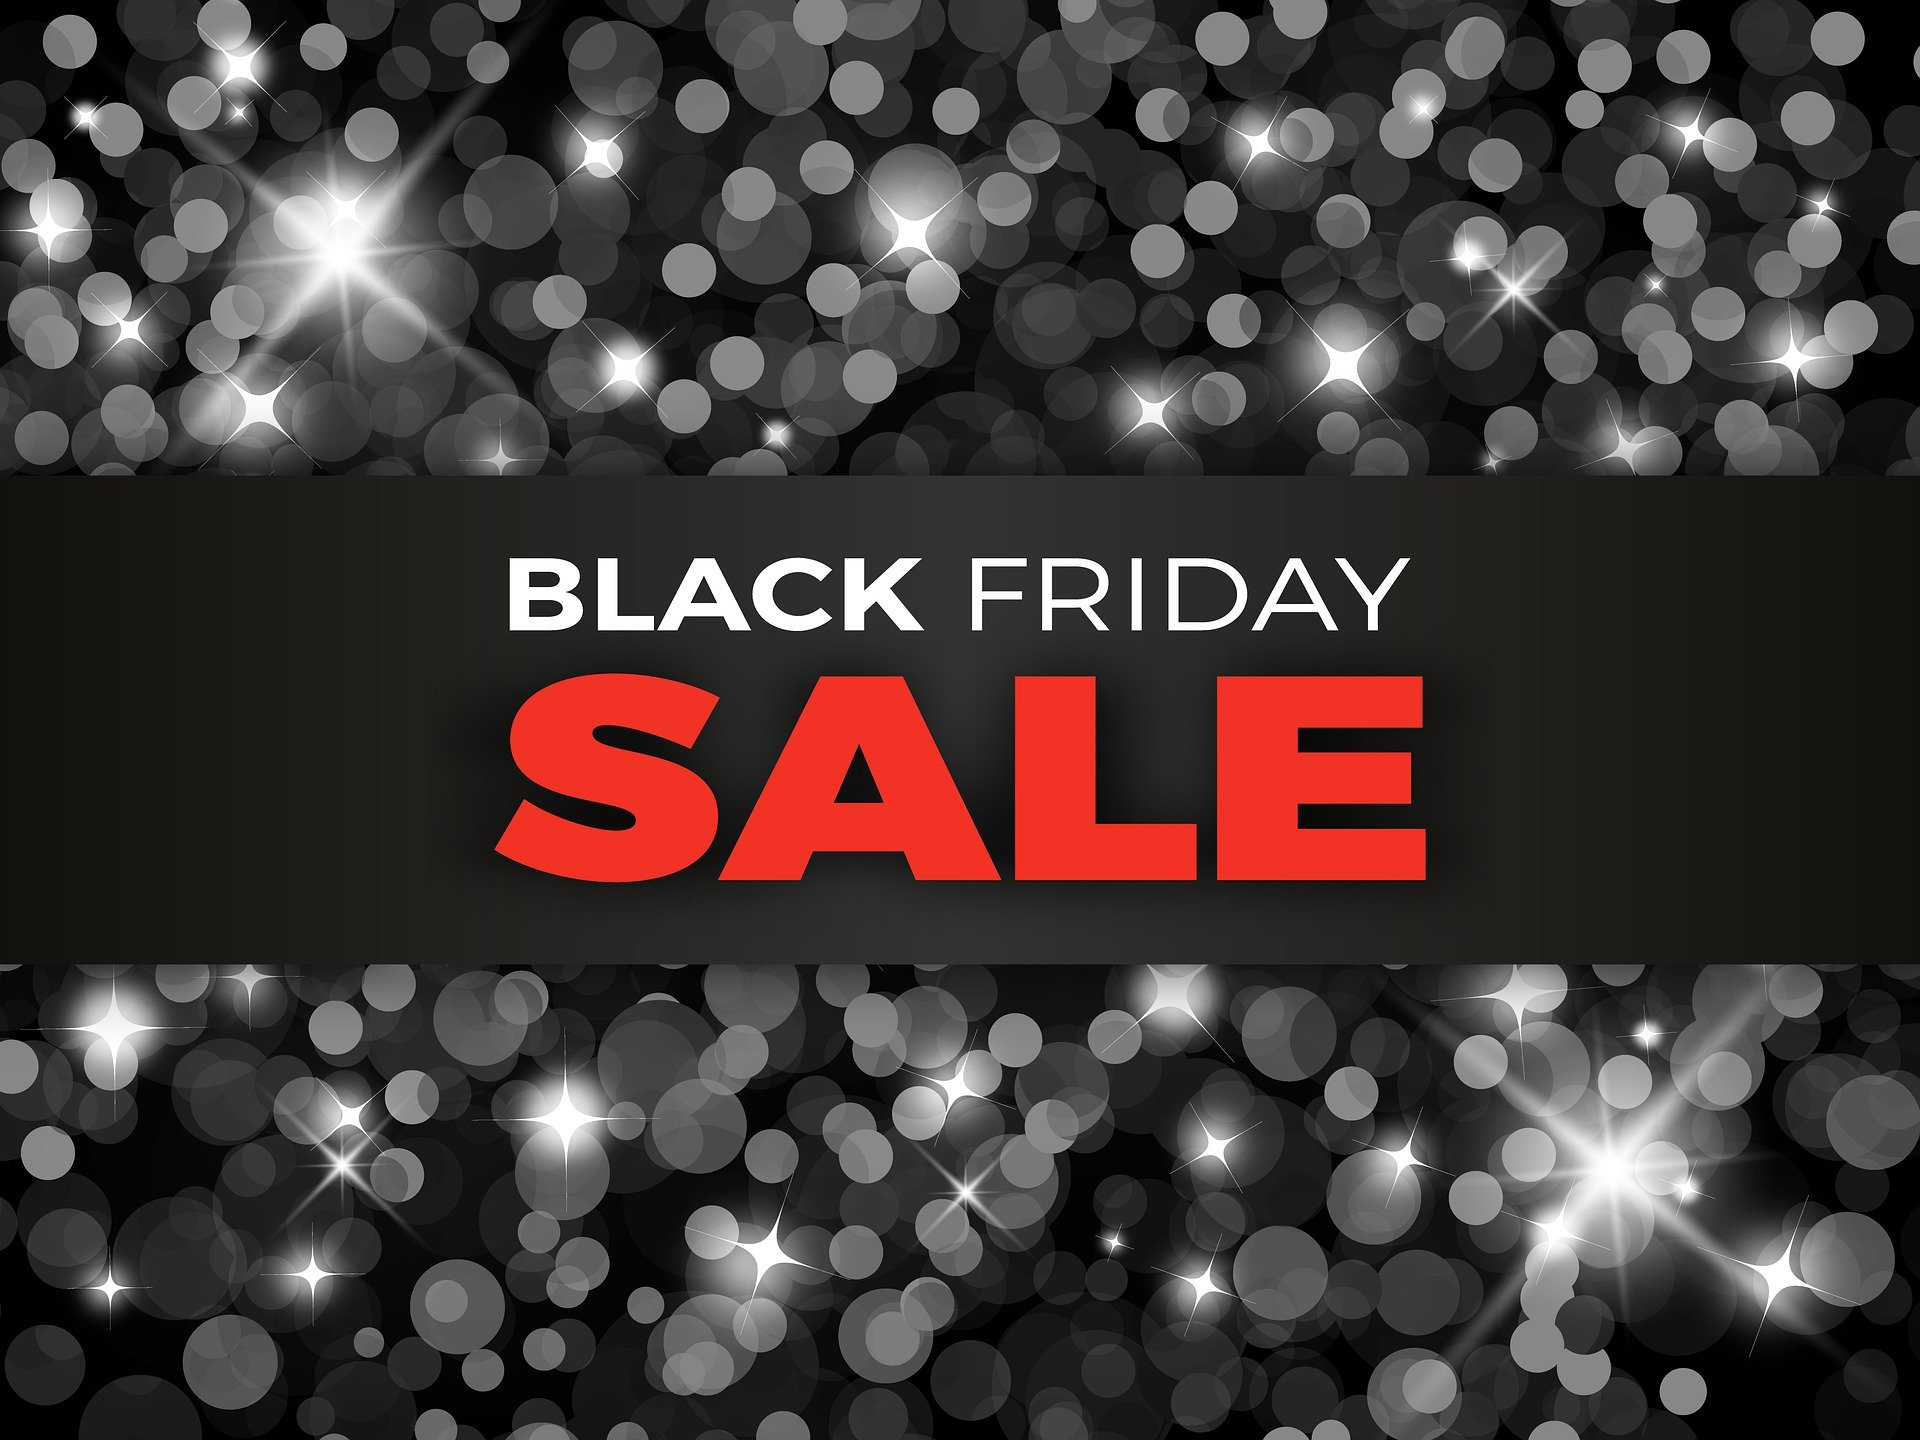 BLACK FRIDAY at Feelingirldress.com - The most fashionable clothes at bargain prices.